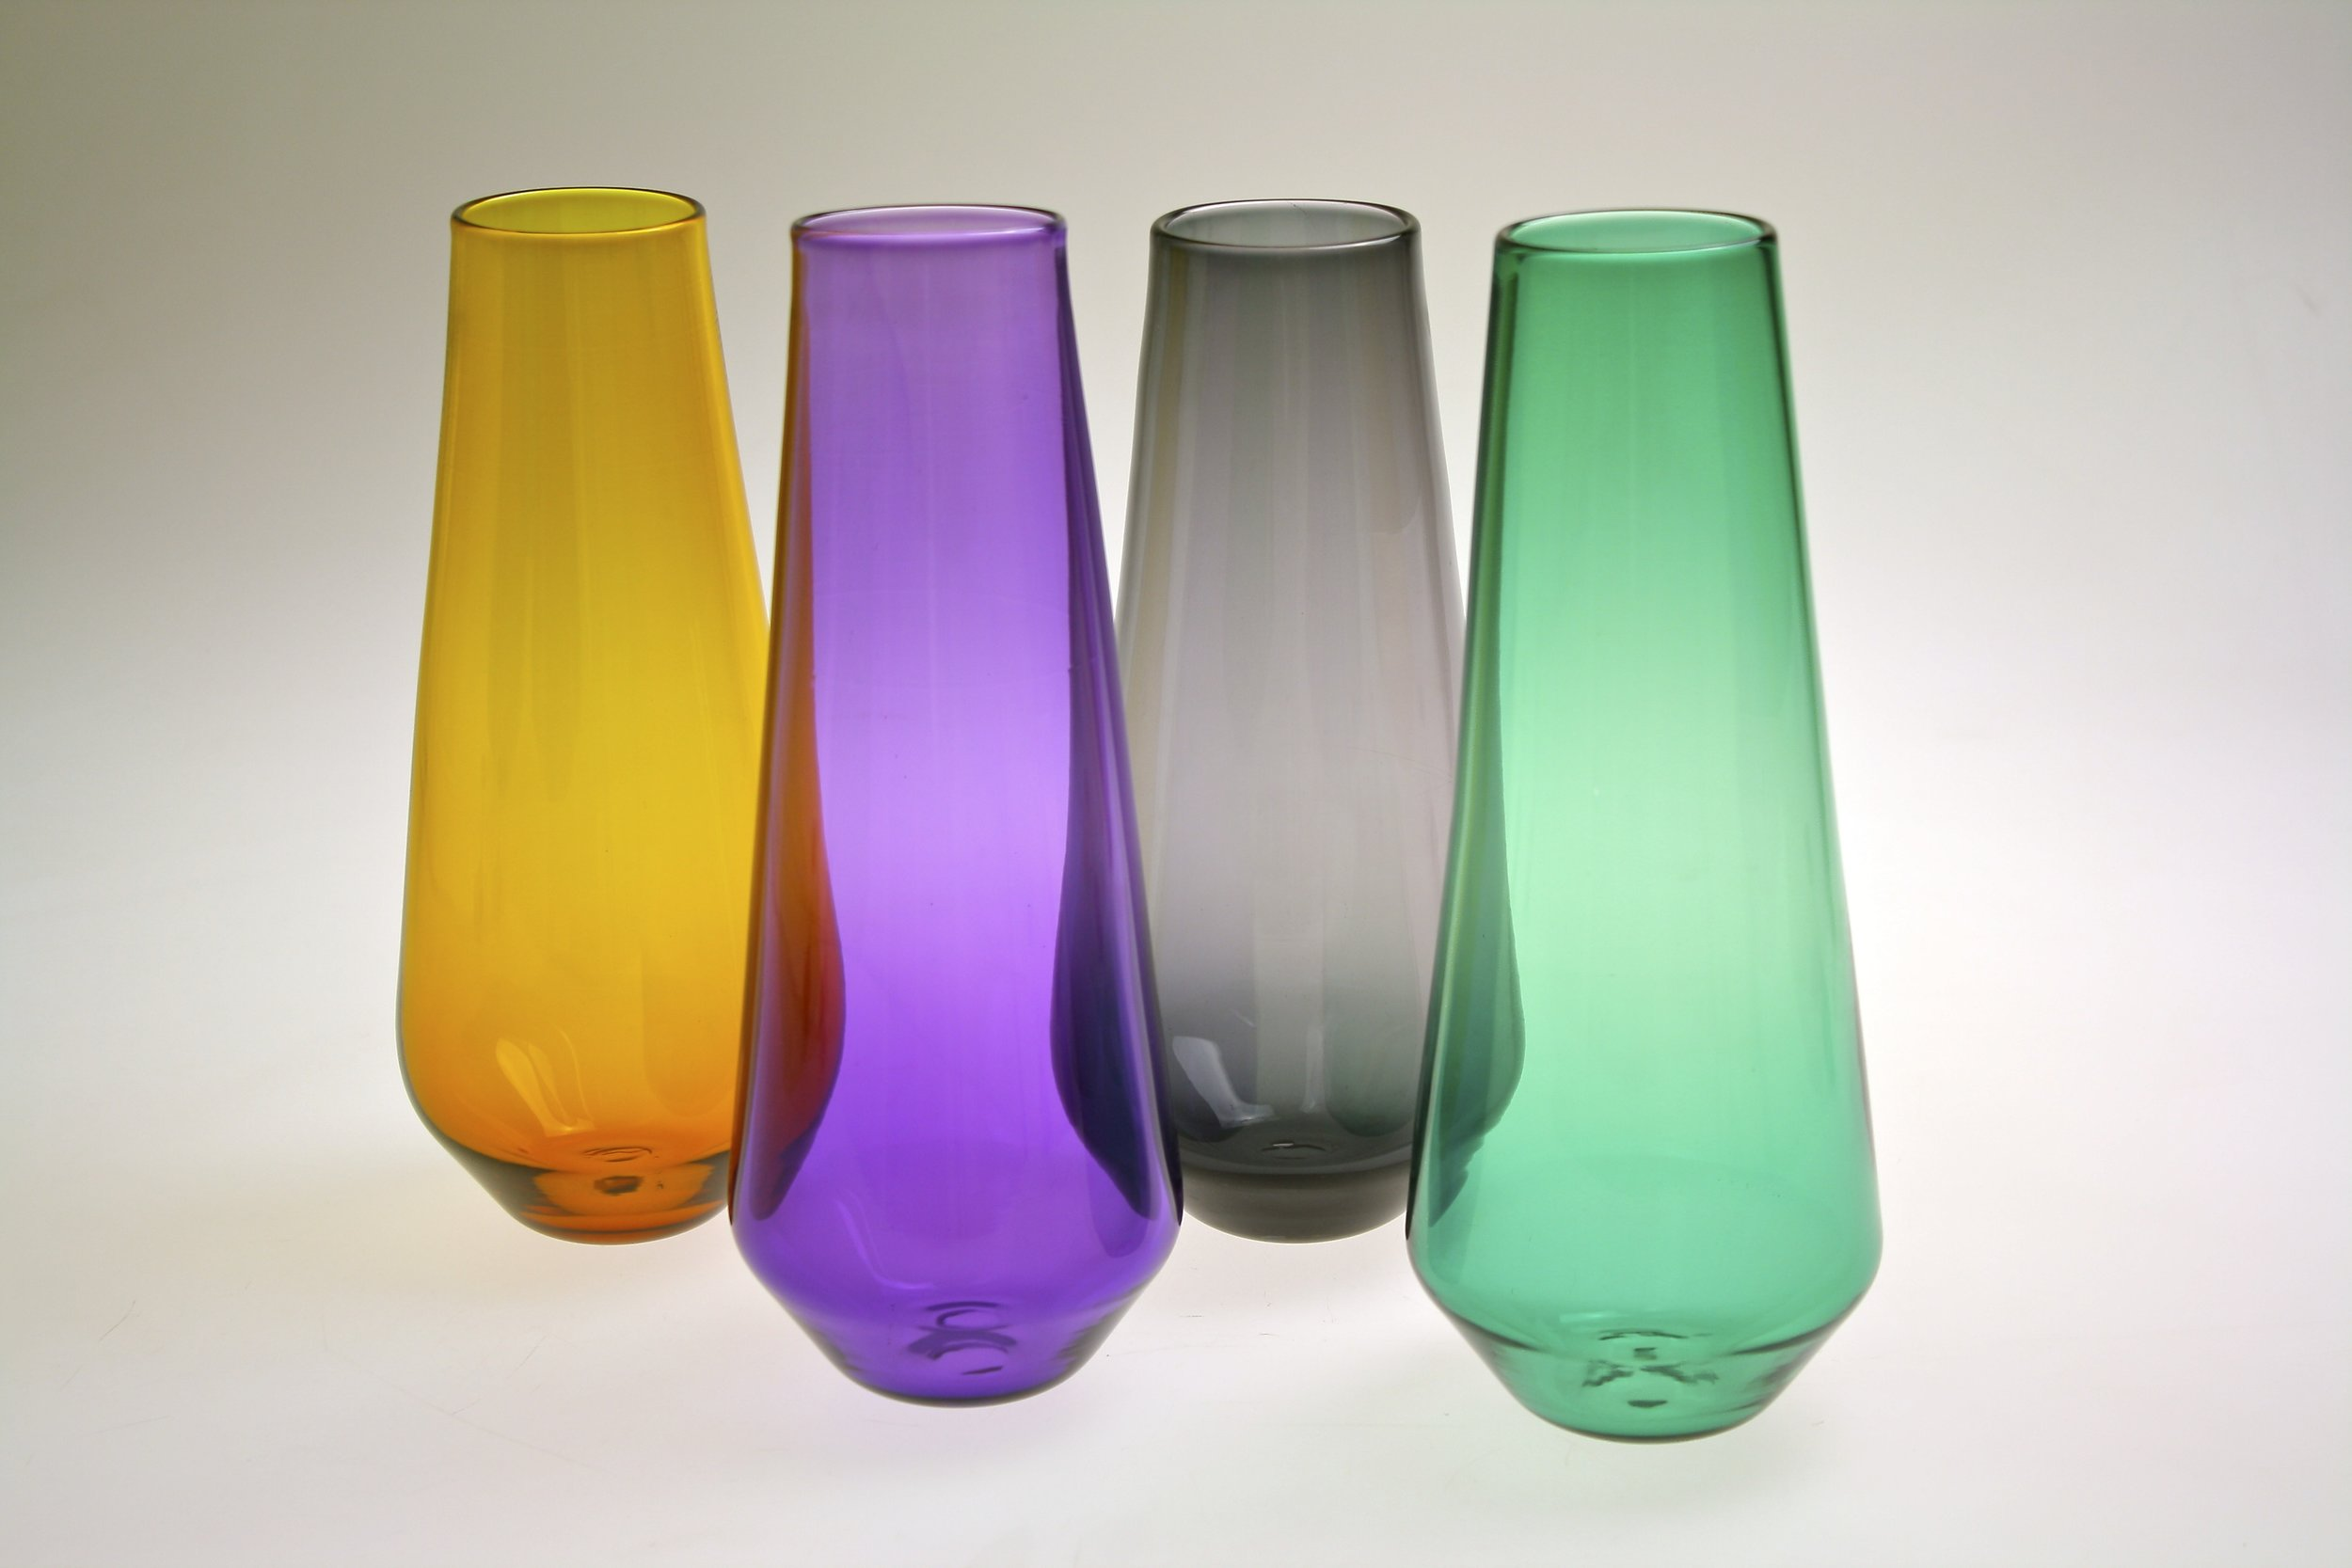 Medium Cantic Vases, 2015